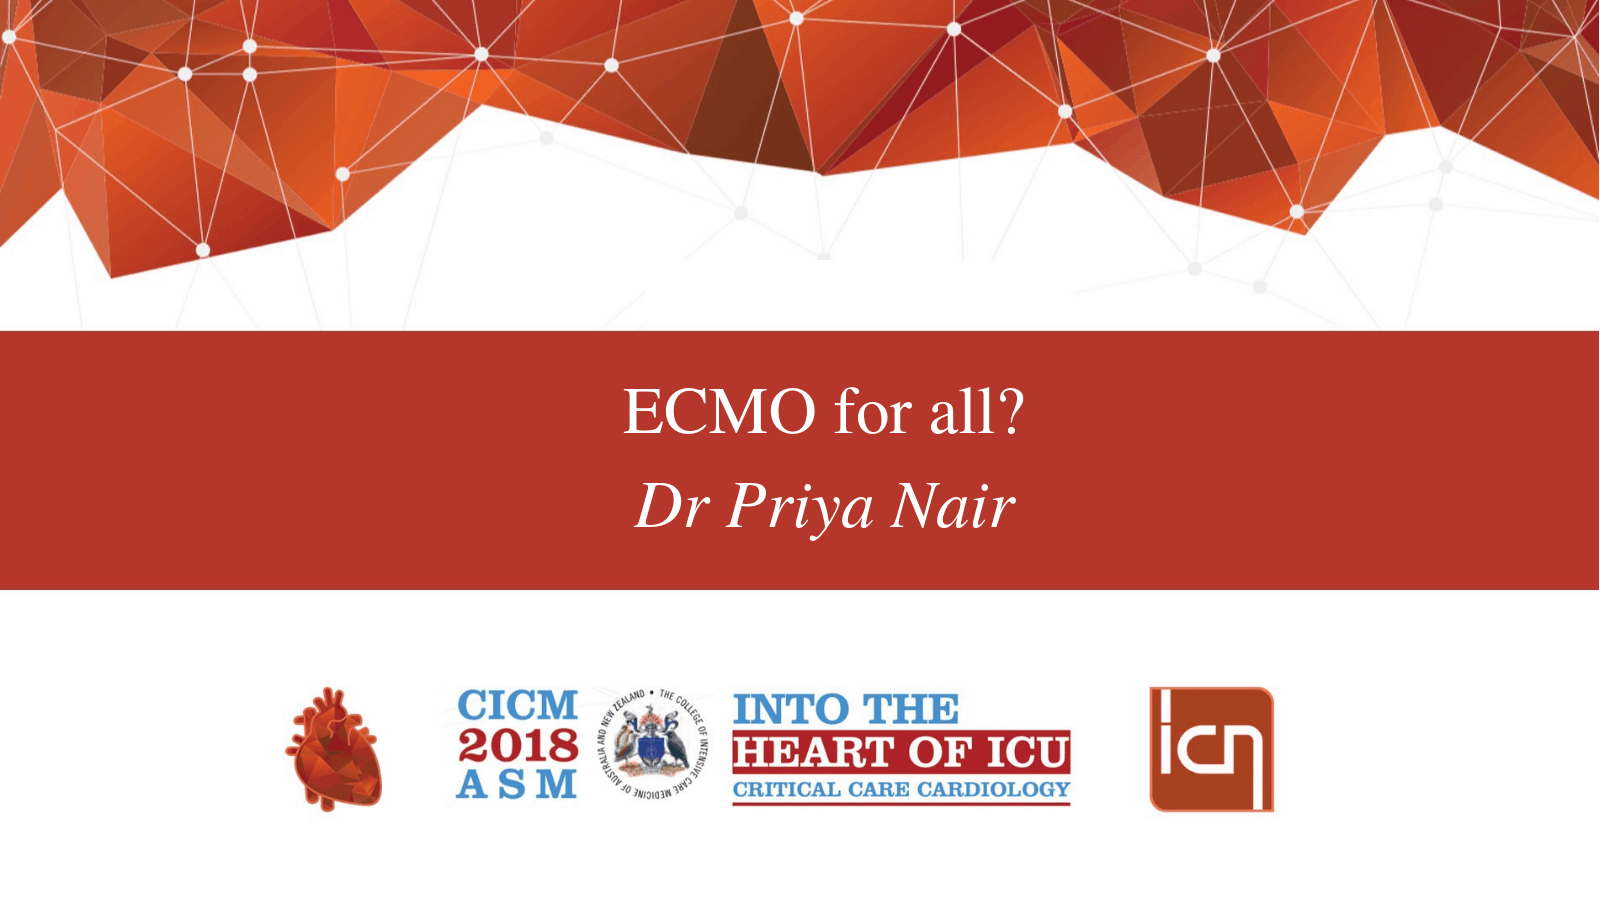 ECMO for all?